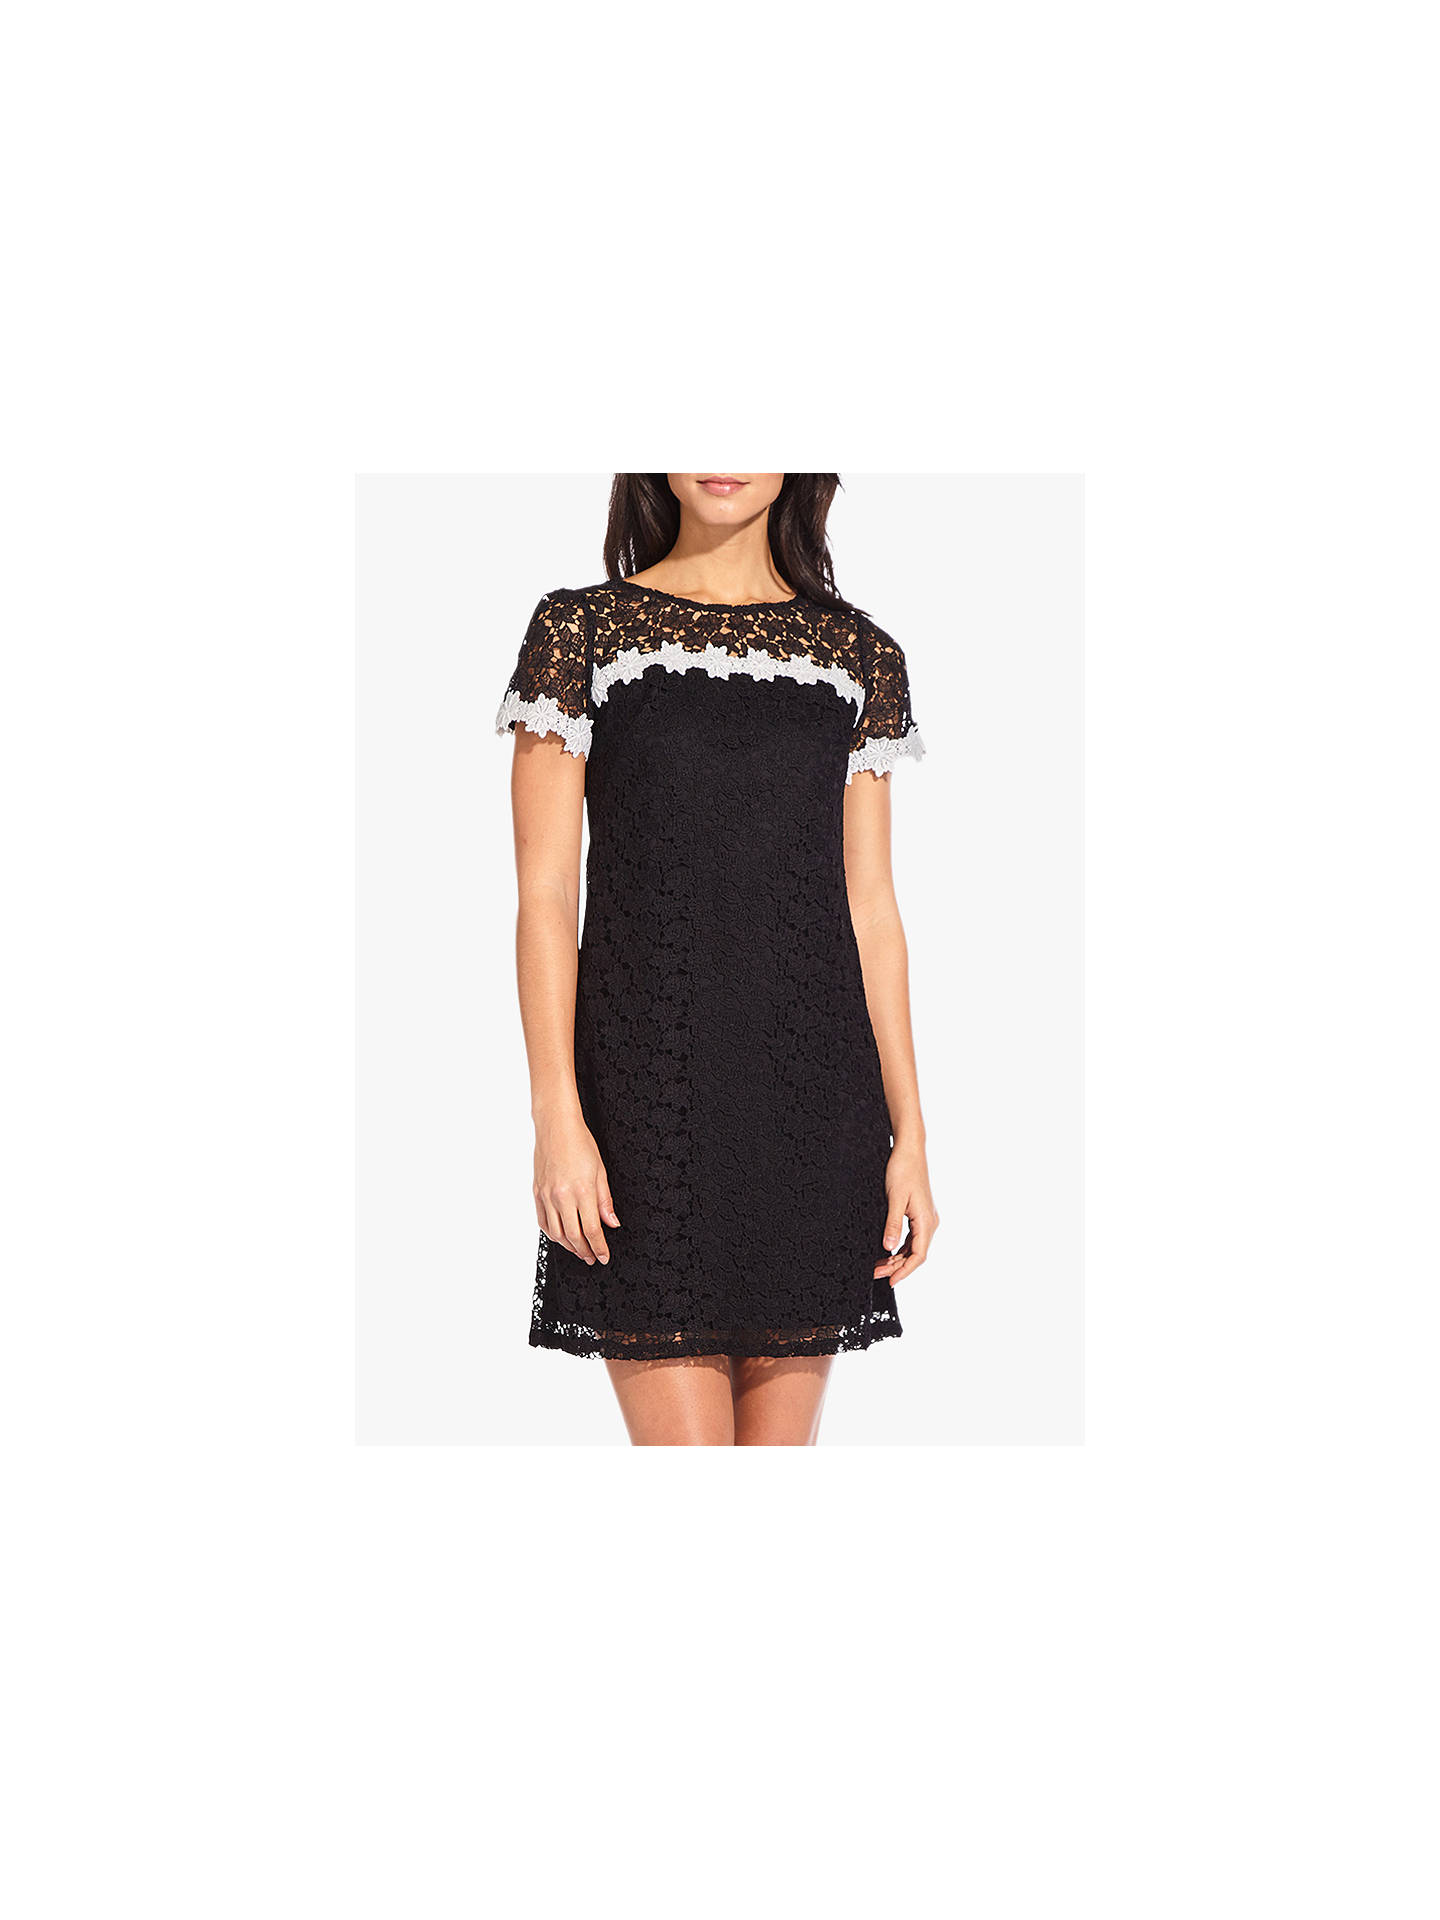 BuyAdrianna Papell Ditsy Floral Lace Dress, Black, 6 Online at johnlewis.com